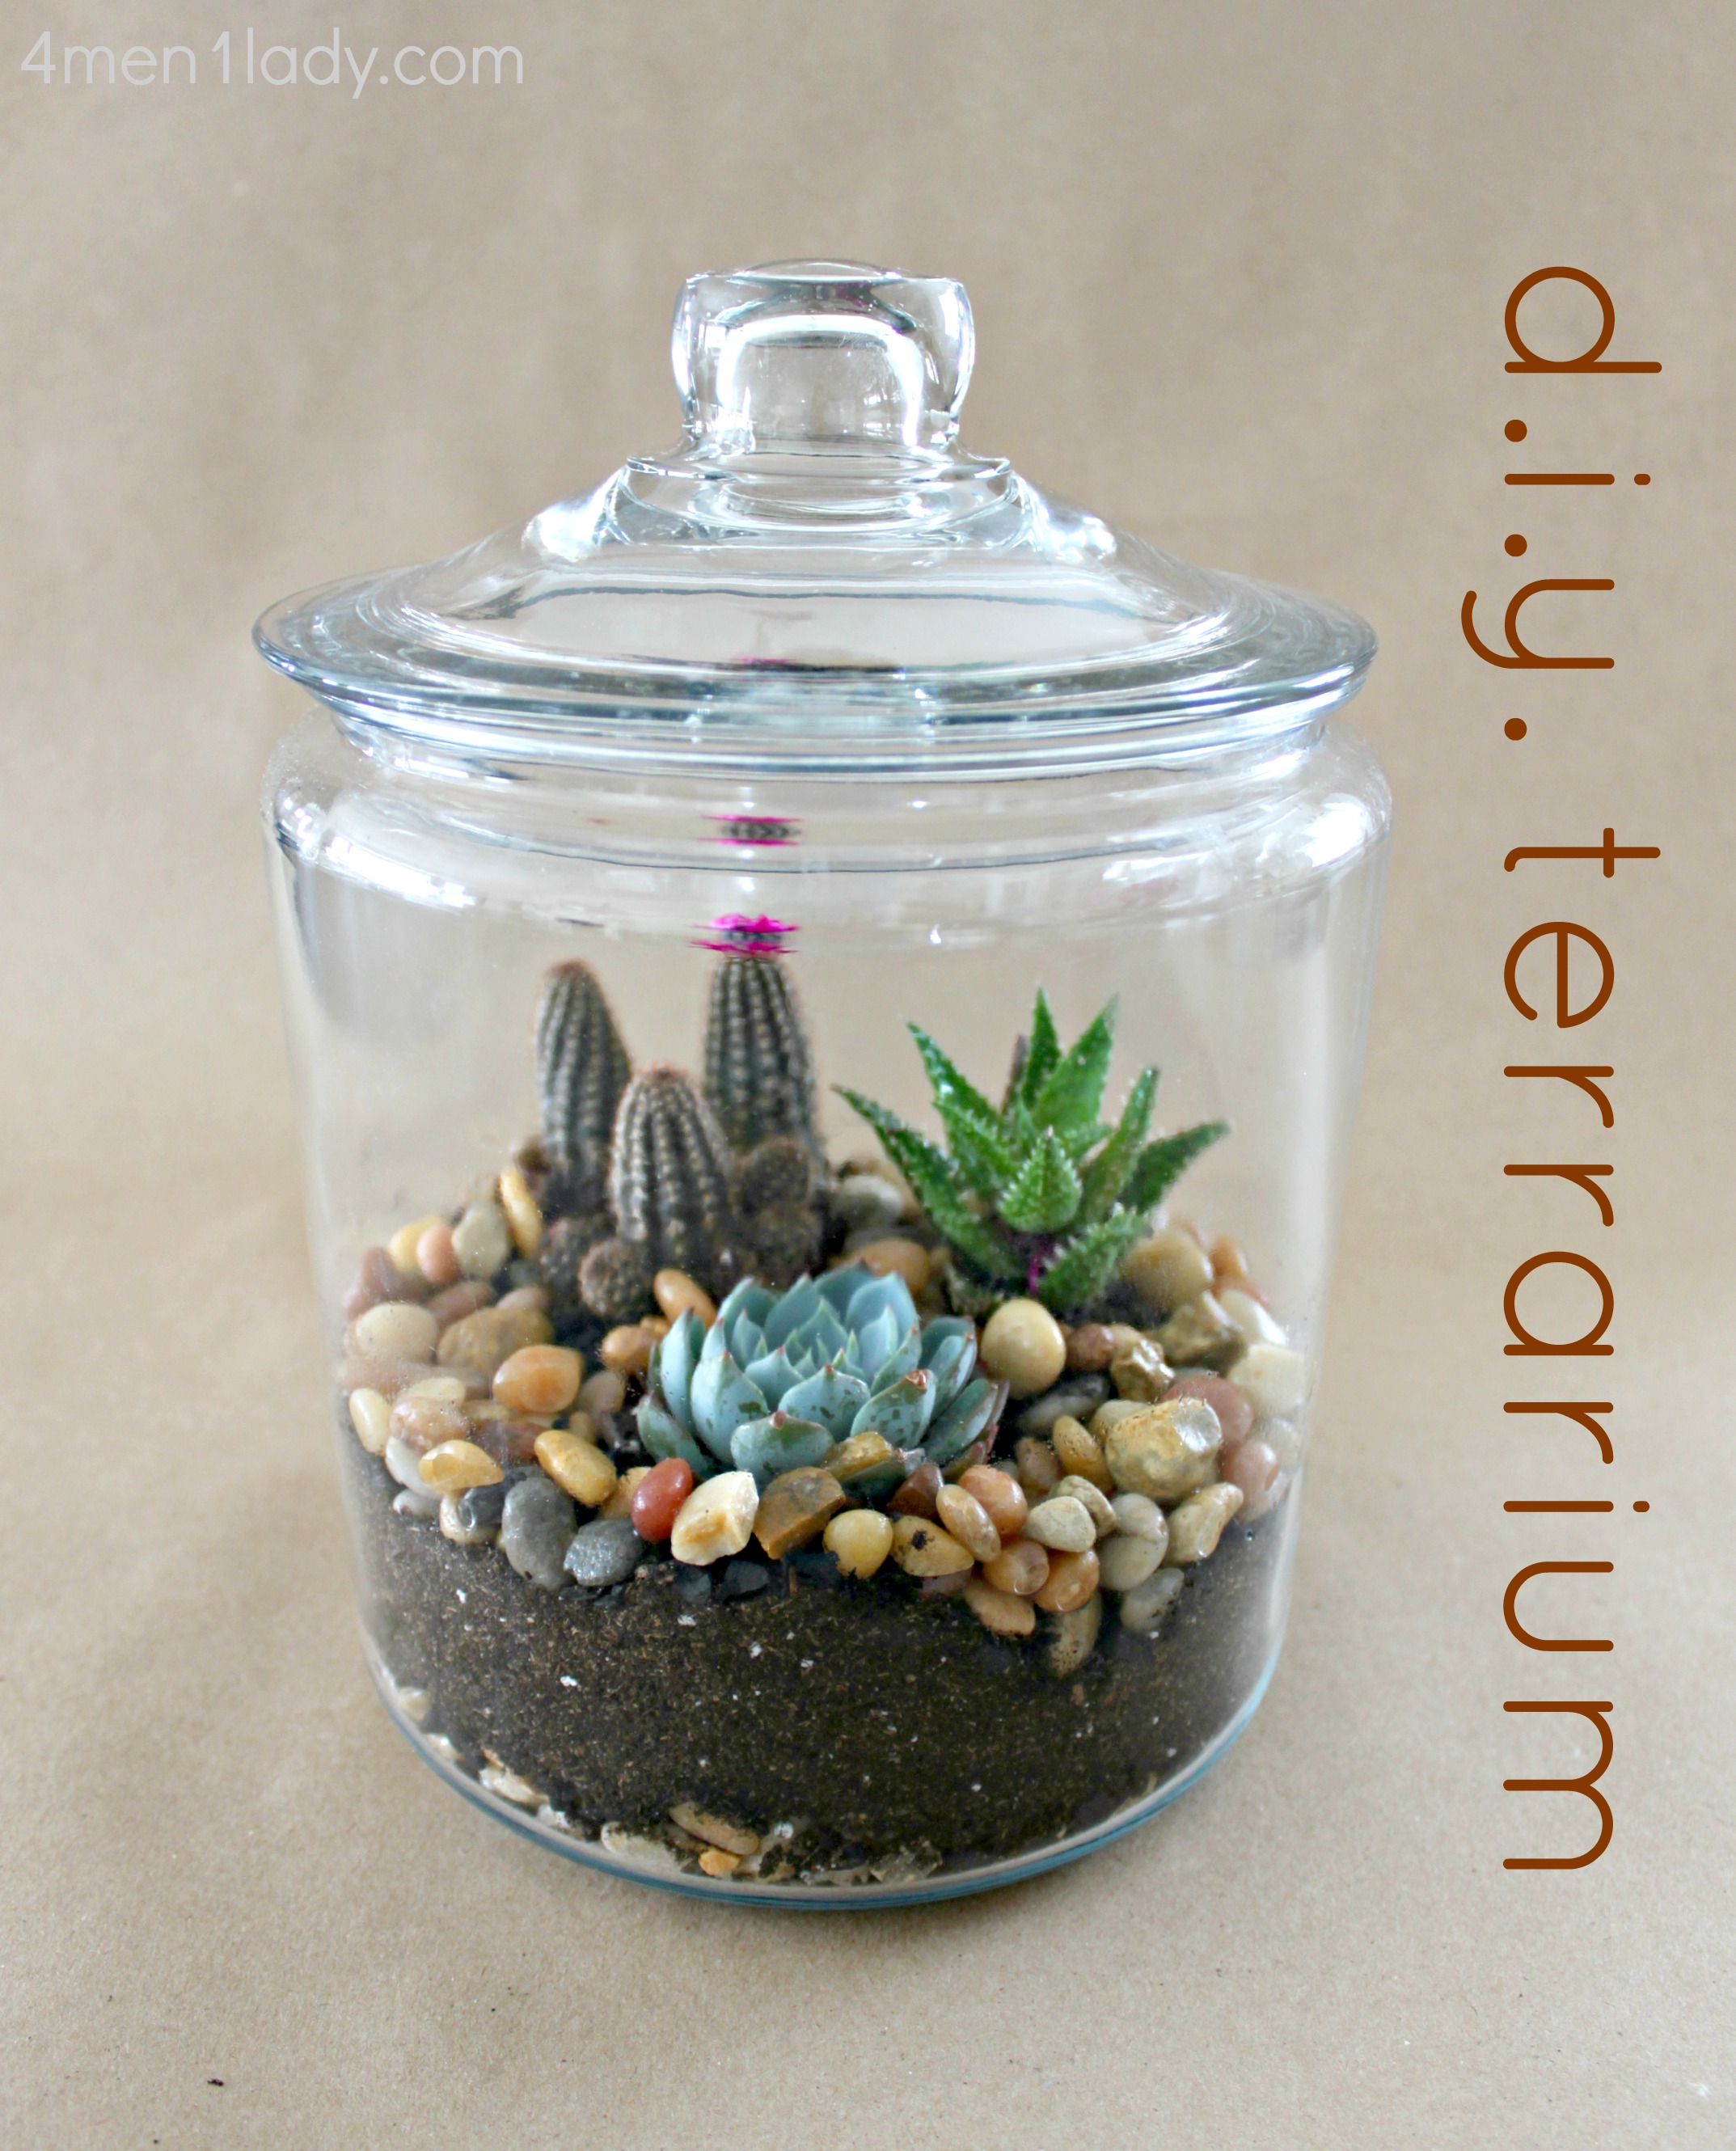 I Have The Lid On My Jar Here But After Doing A Little Research I Learned  That Desert Plants Are Not The Most Ideal For A Closed Terrarium Because  They ...